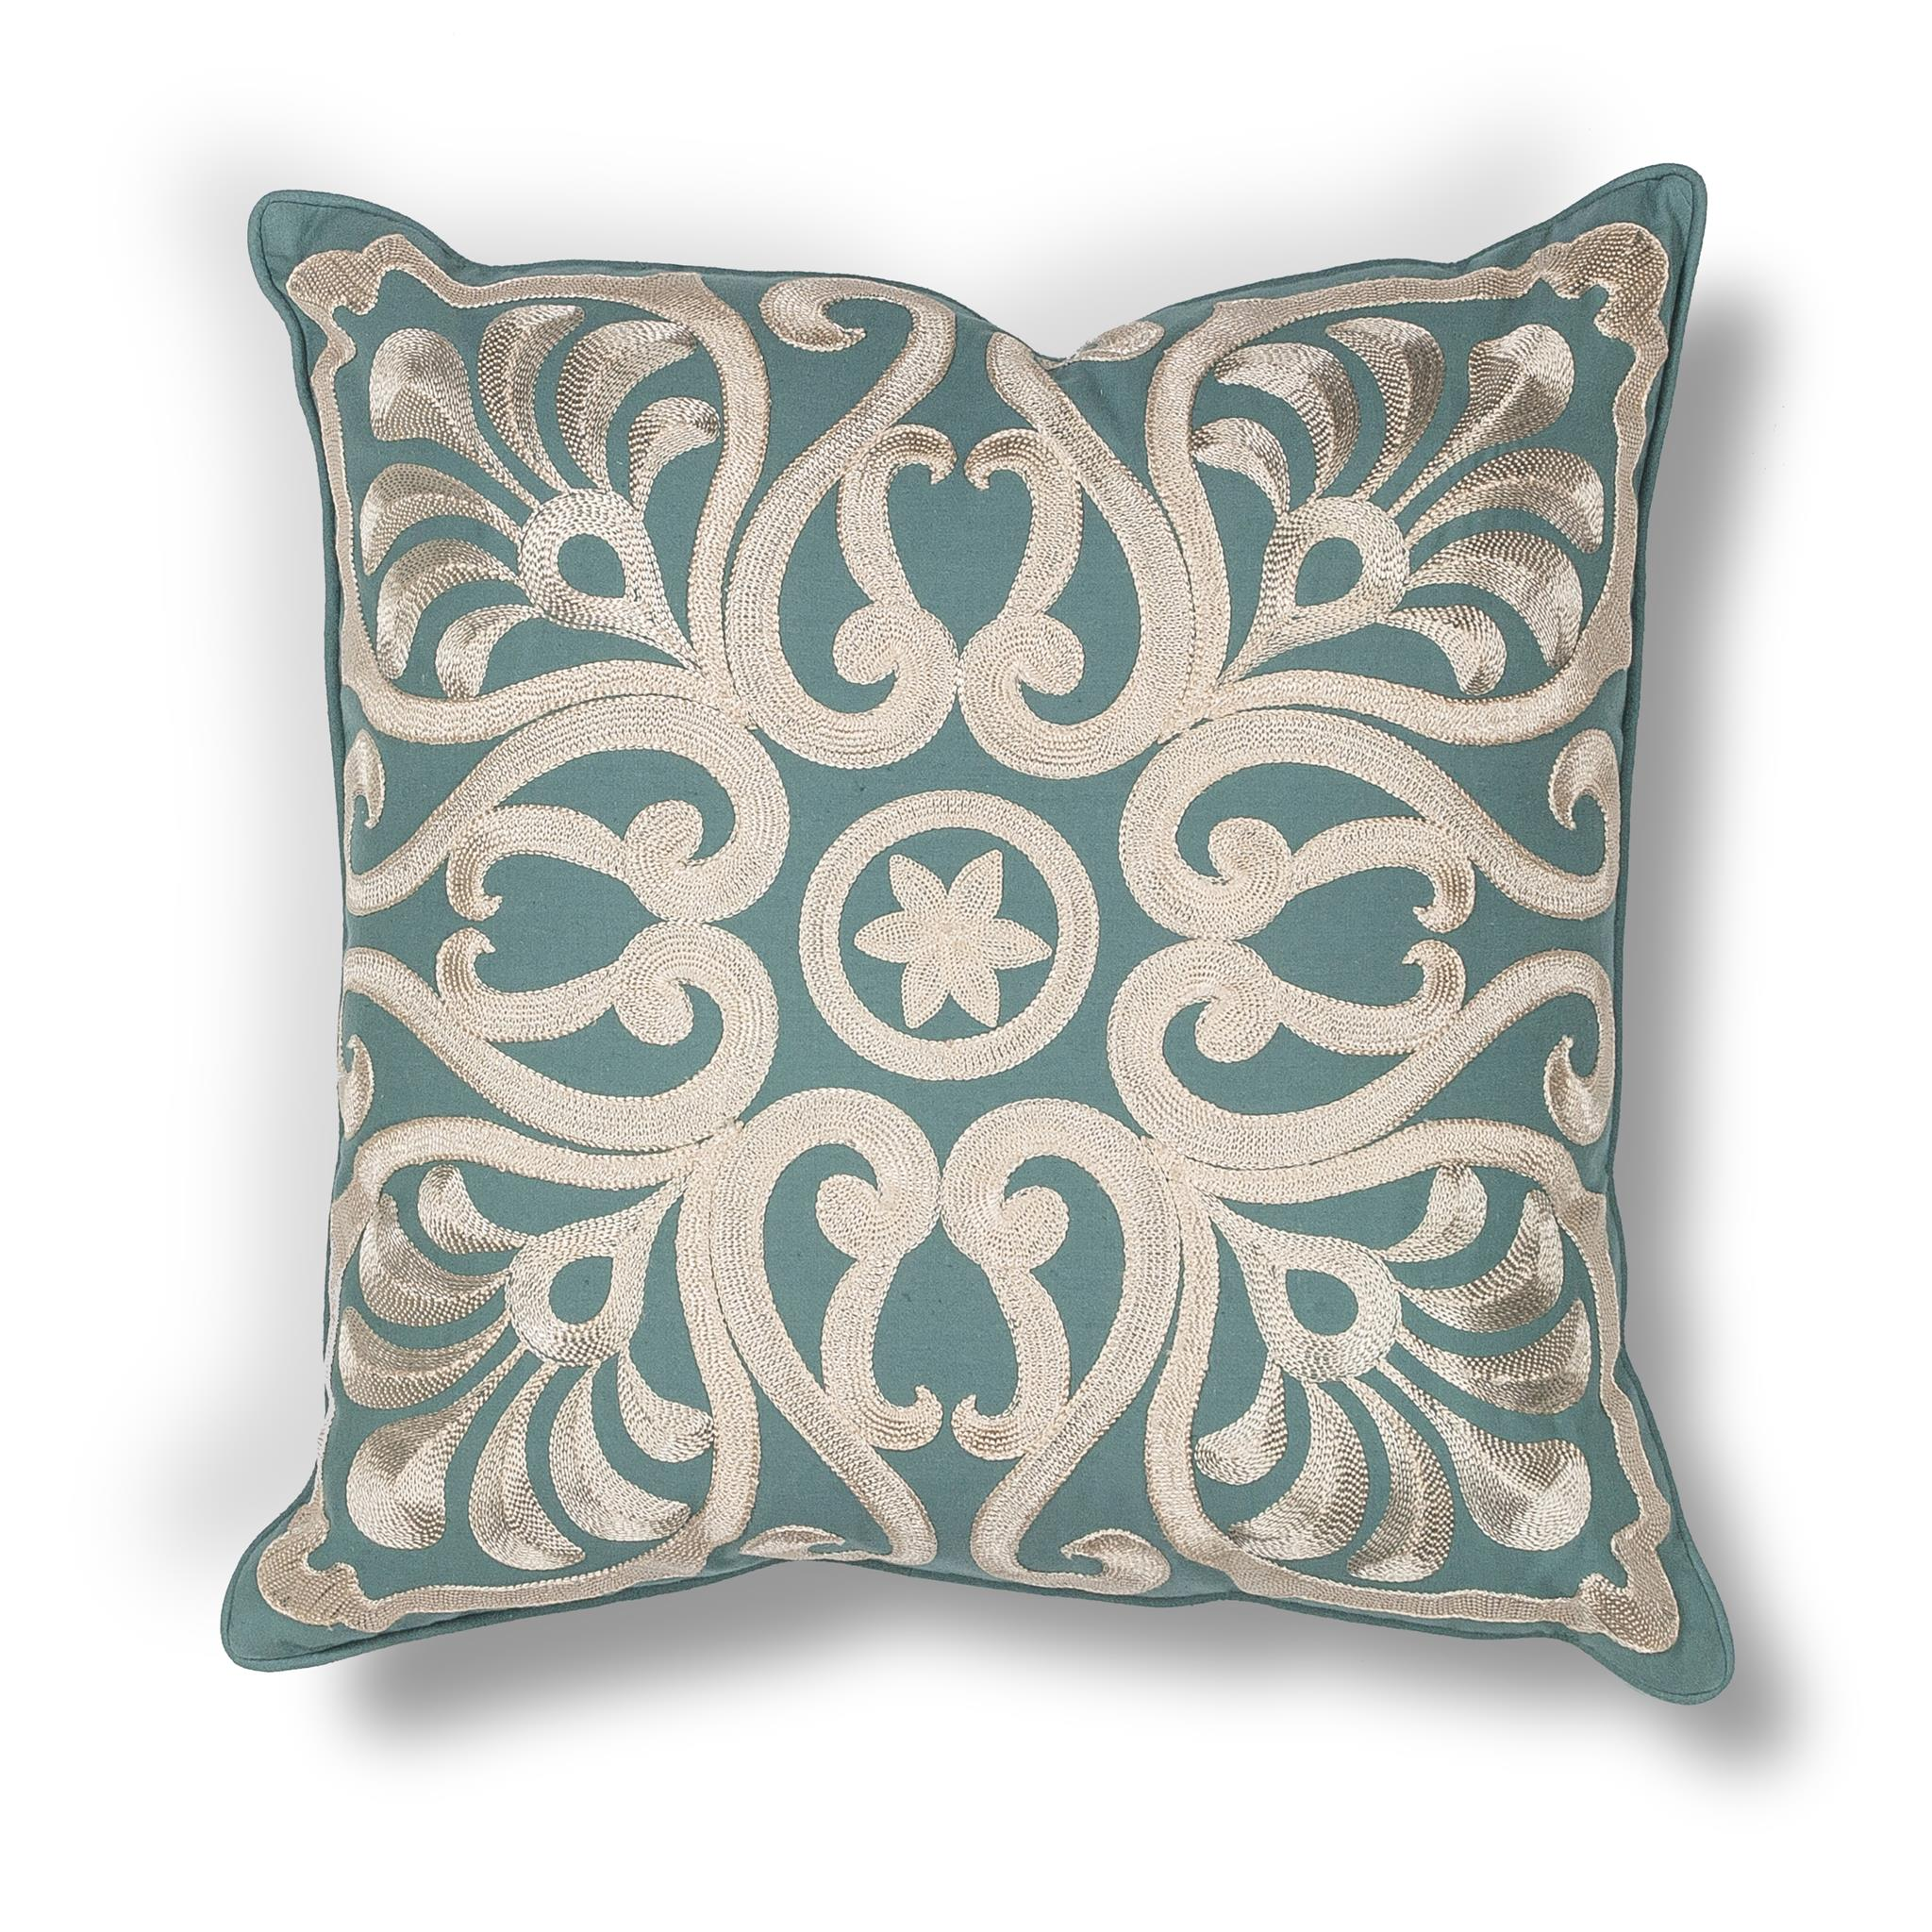 L189 Teal Damask Pillow